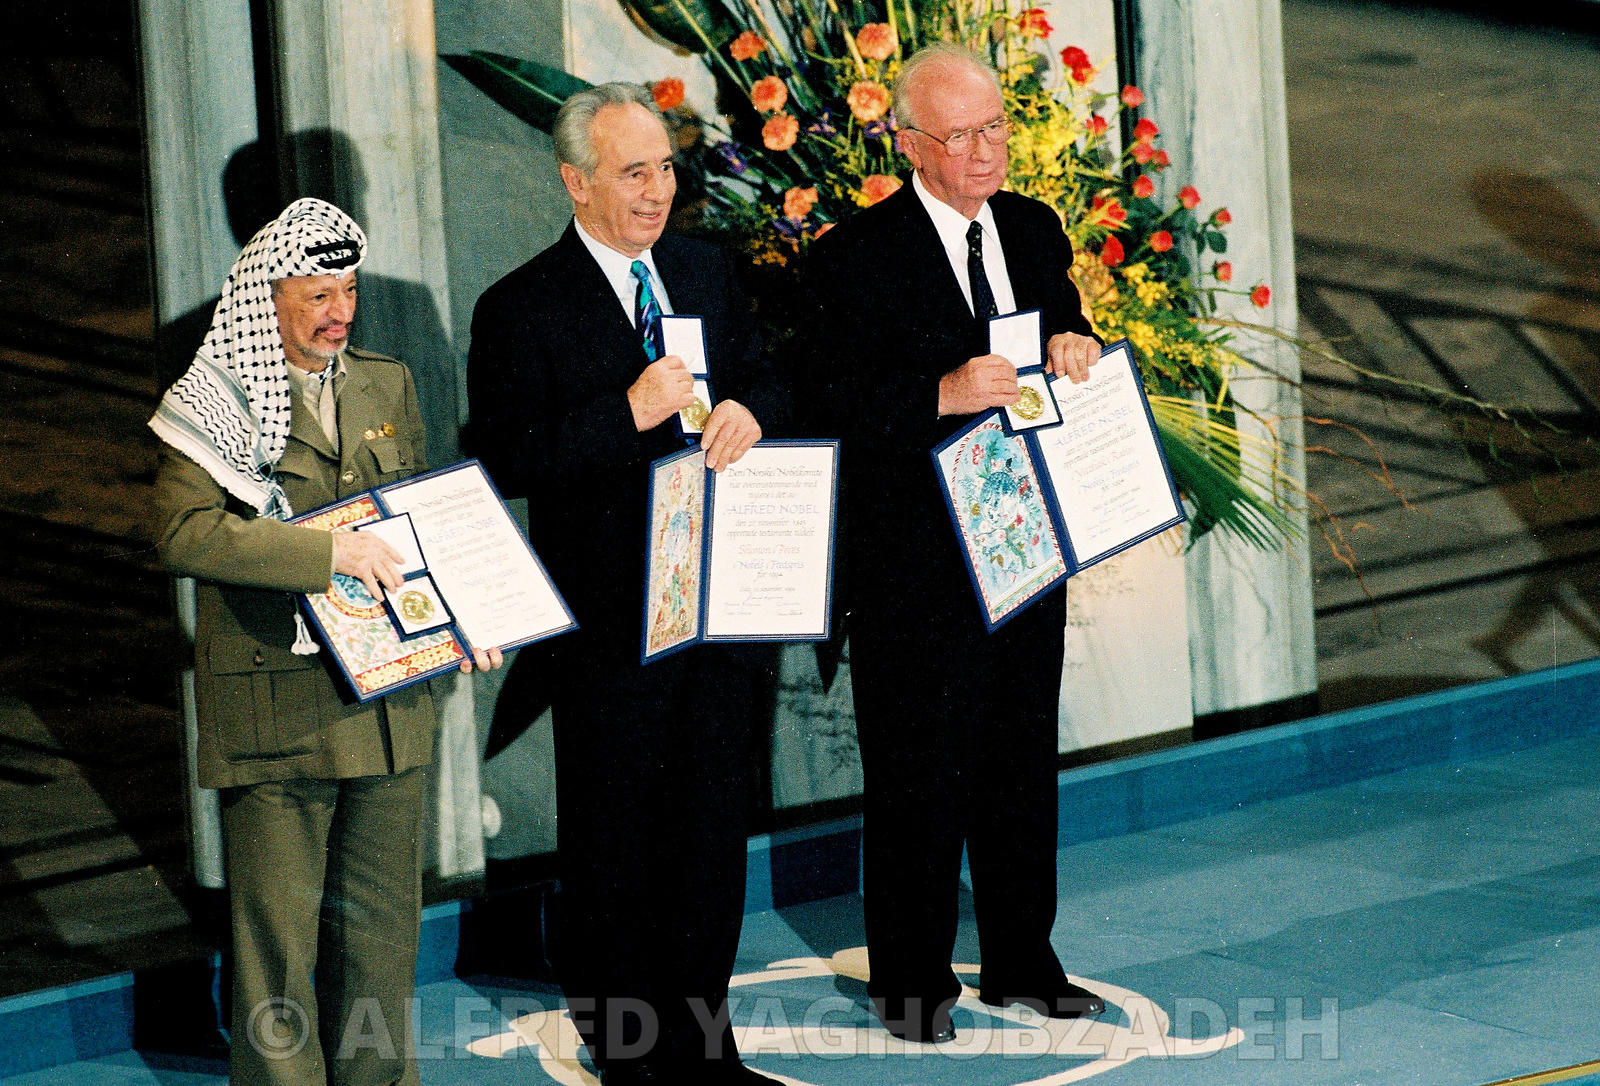 Yasser Arafat, Shimon Peres and Yitzhak Rabin showing their Nobel Peace Prize in Oslo.